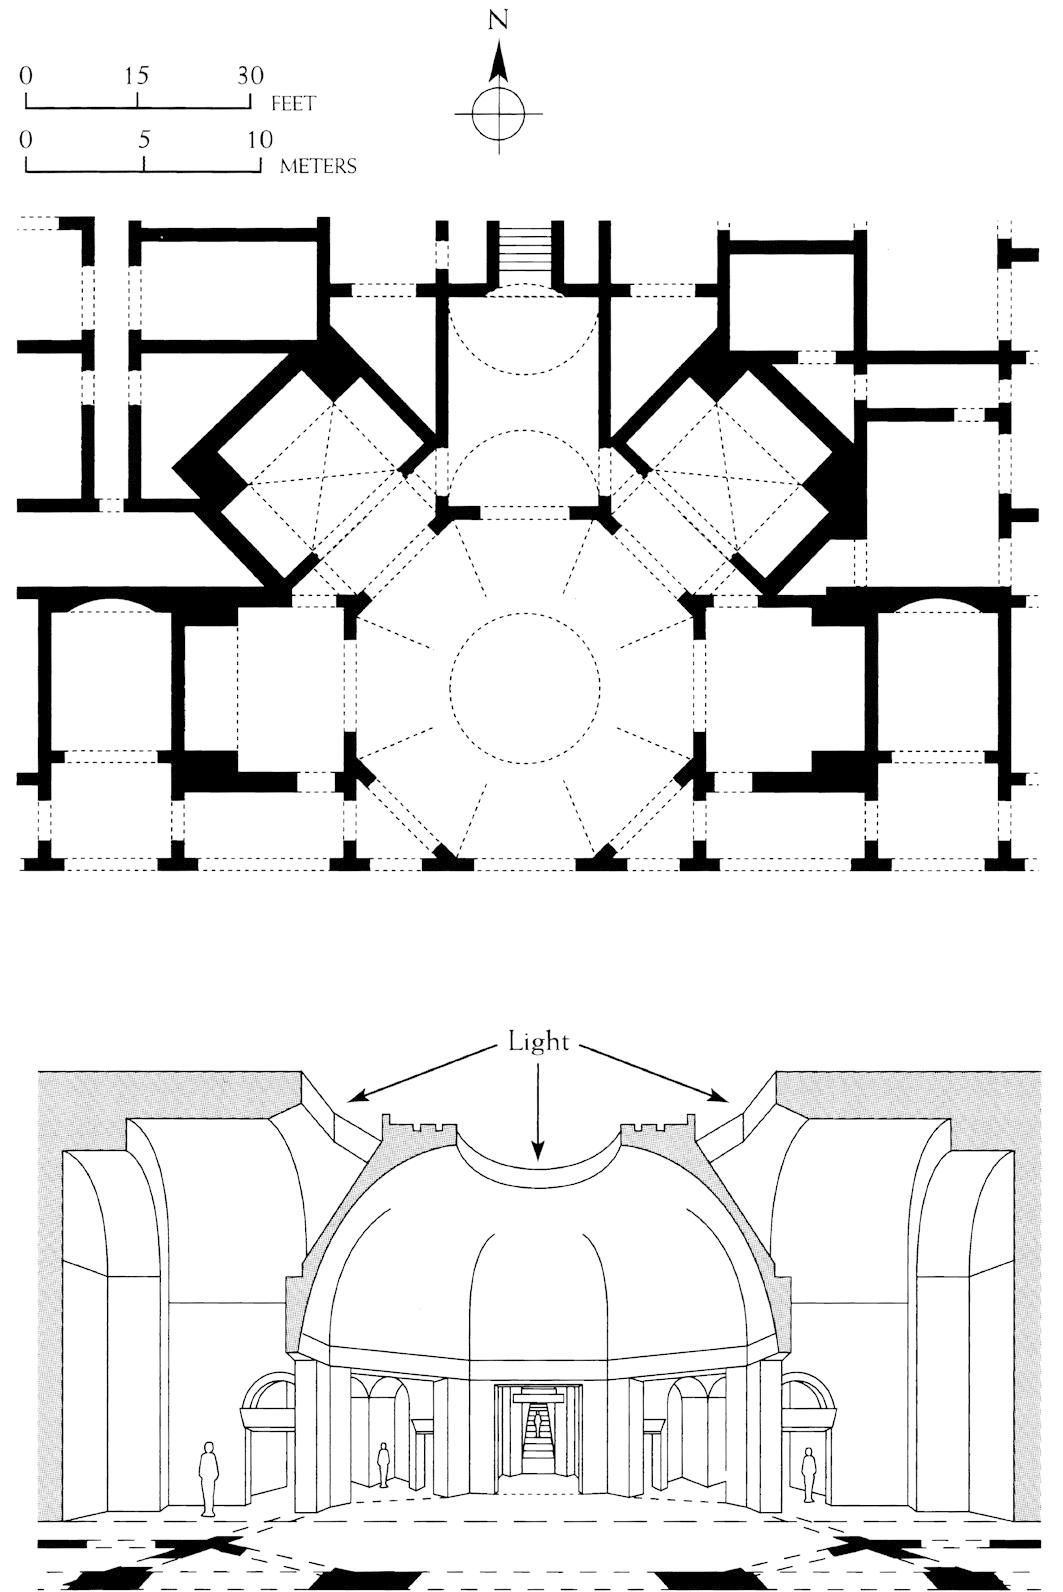 55 Plan And Section Of The Octagonal Room Of Domus Aurea Golden House Of Nero Rome Severus Roman Architecture Rome Architecture Ancient Roman Architecture